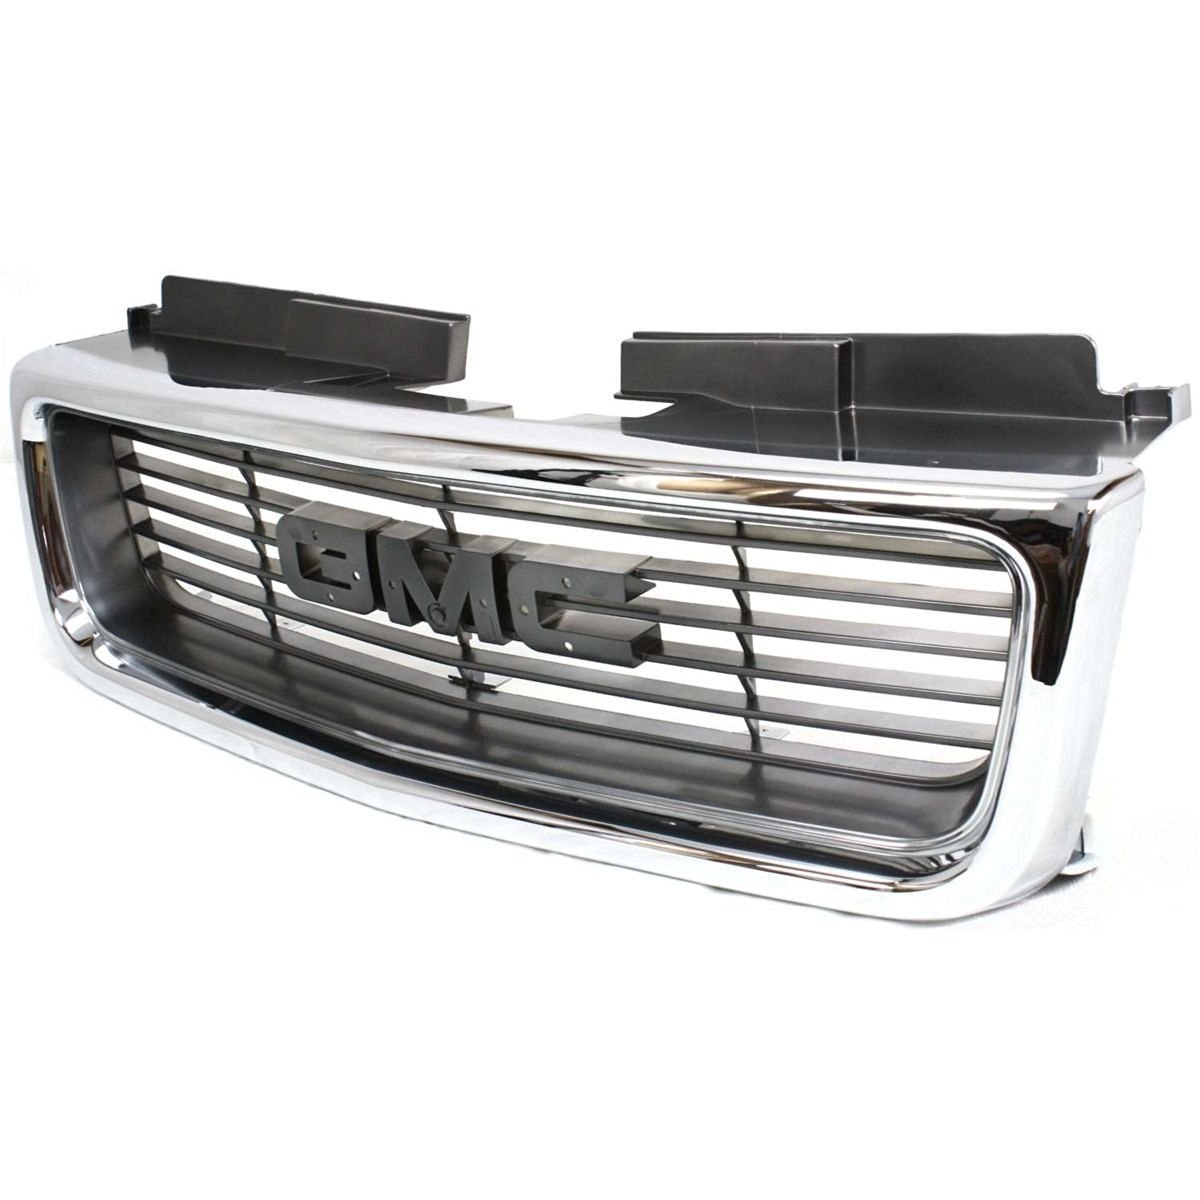 Diften 102-A5922-X01 - New Grille Assembly Grill Chrome shell gray insert GMC Jimmy GM1200422 19130793